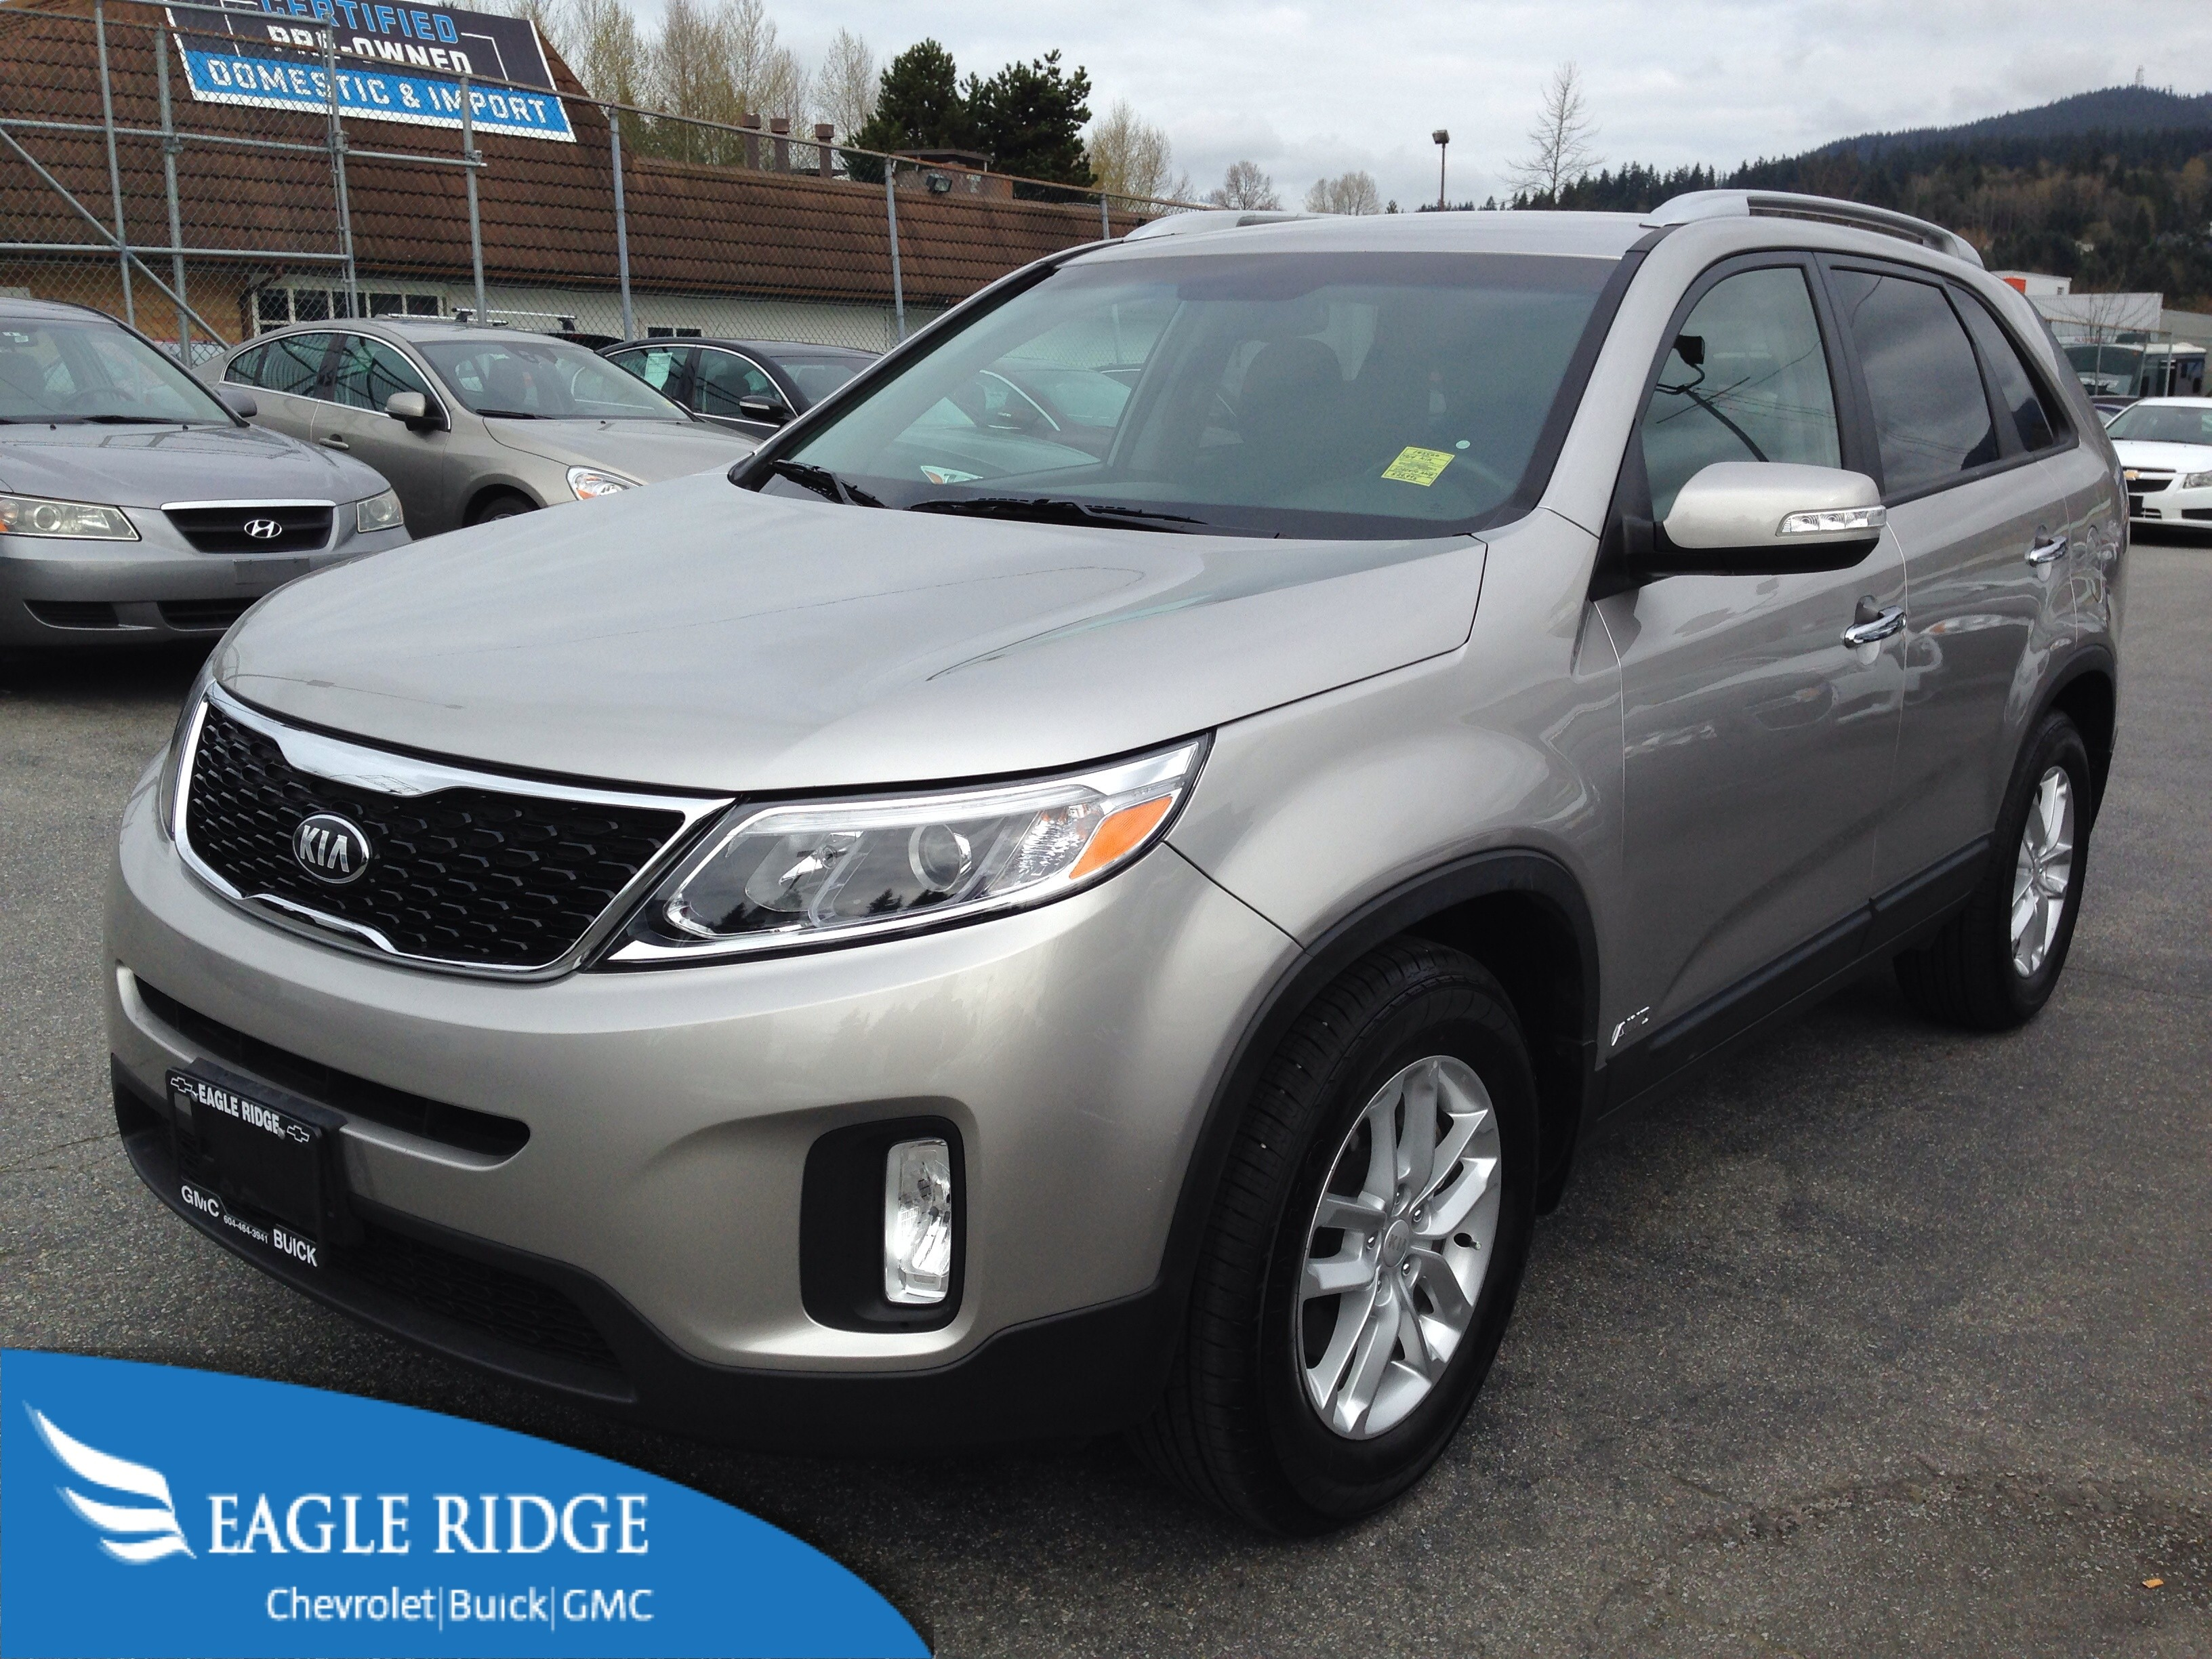 exterior review interior new engine car specs redesign sorento price reviews kia usa changes